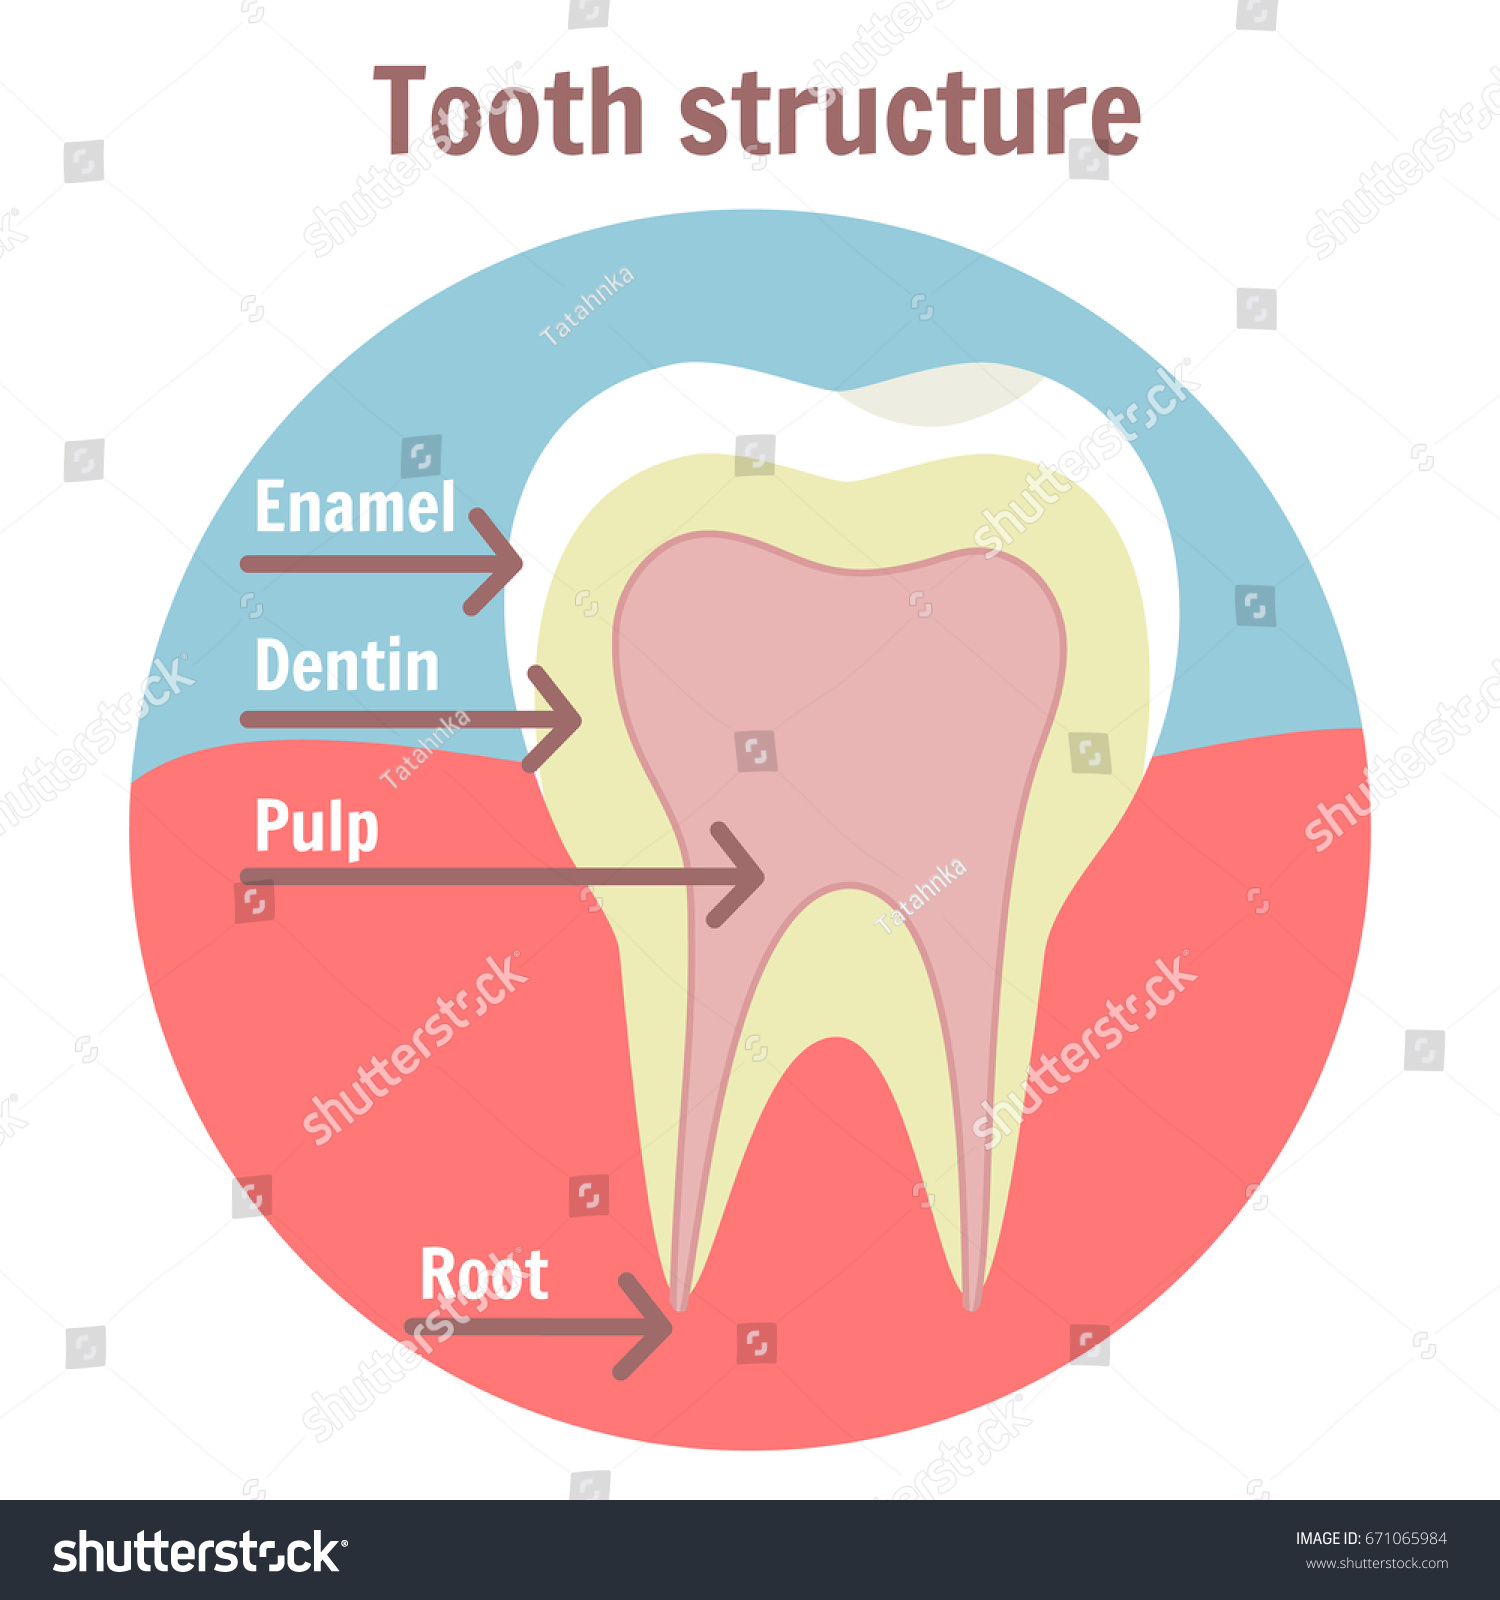 Dental tooth structure medical diagram structure stock vector medical diagram of the structure of human tooth dentist clean teeth pooptronica Images